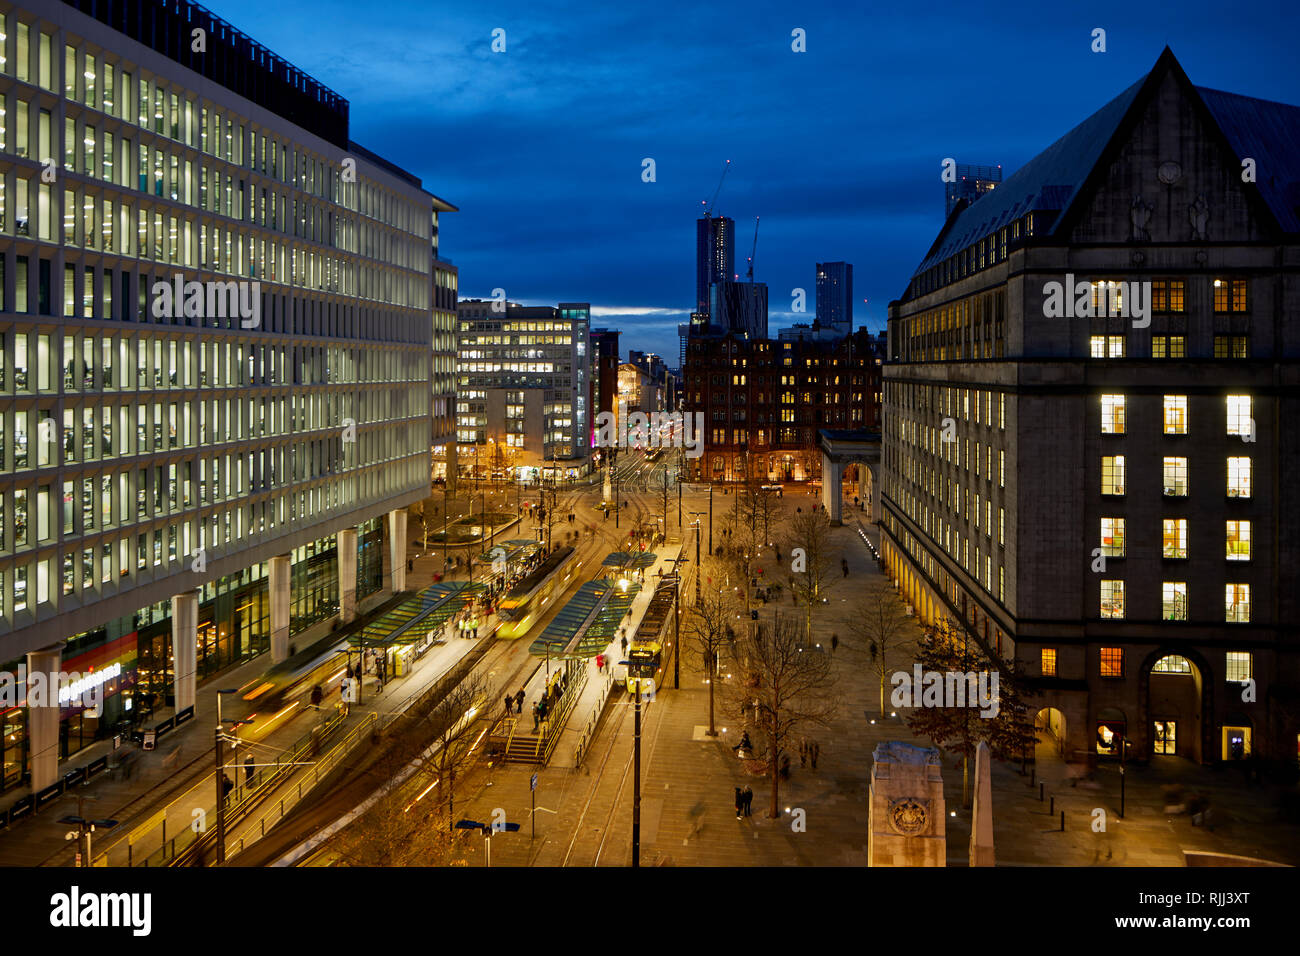 View from hunters Education into St Peters Square Metrolink tram interchange and modern public open pedestrian space at the back of Manchester Town Ha - Stock Image